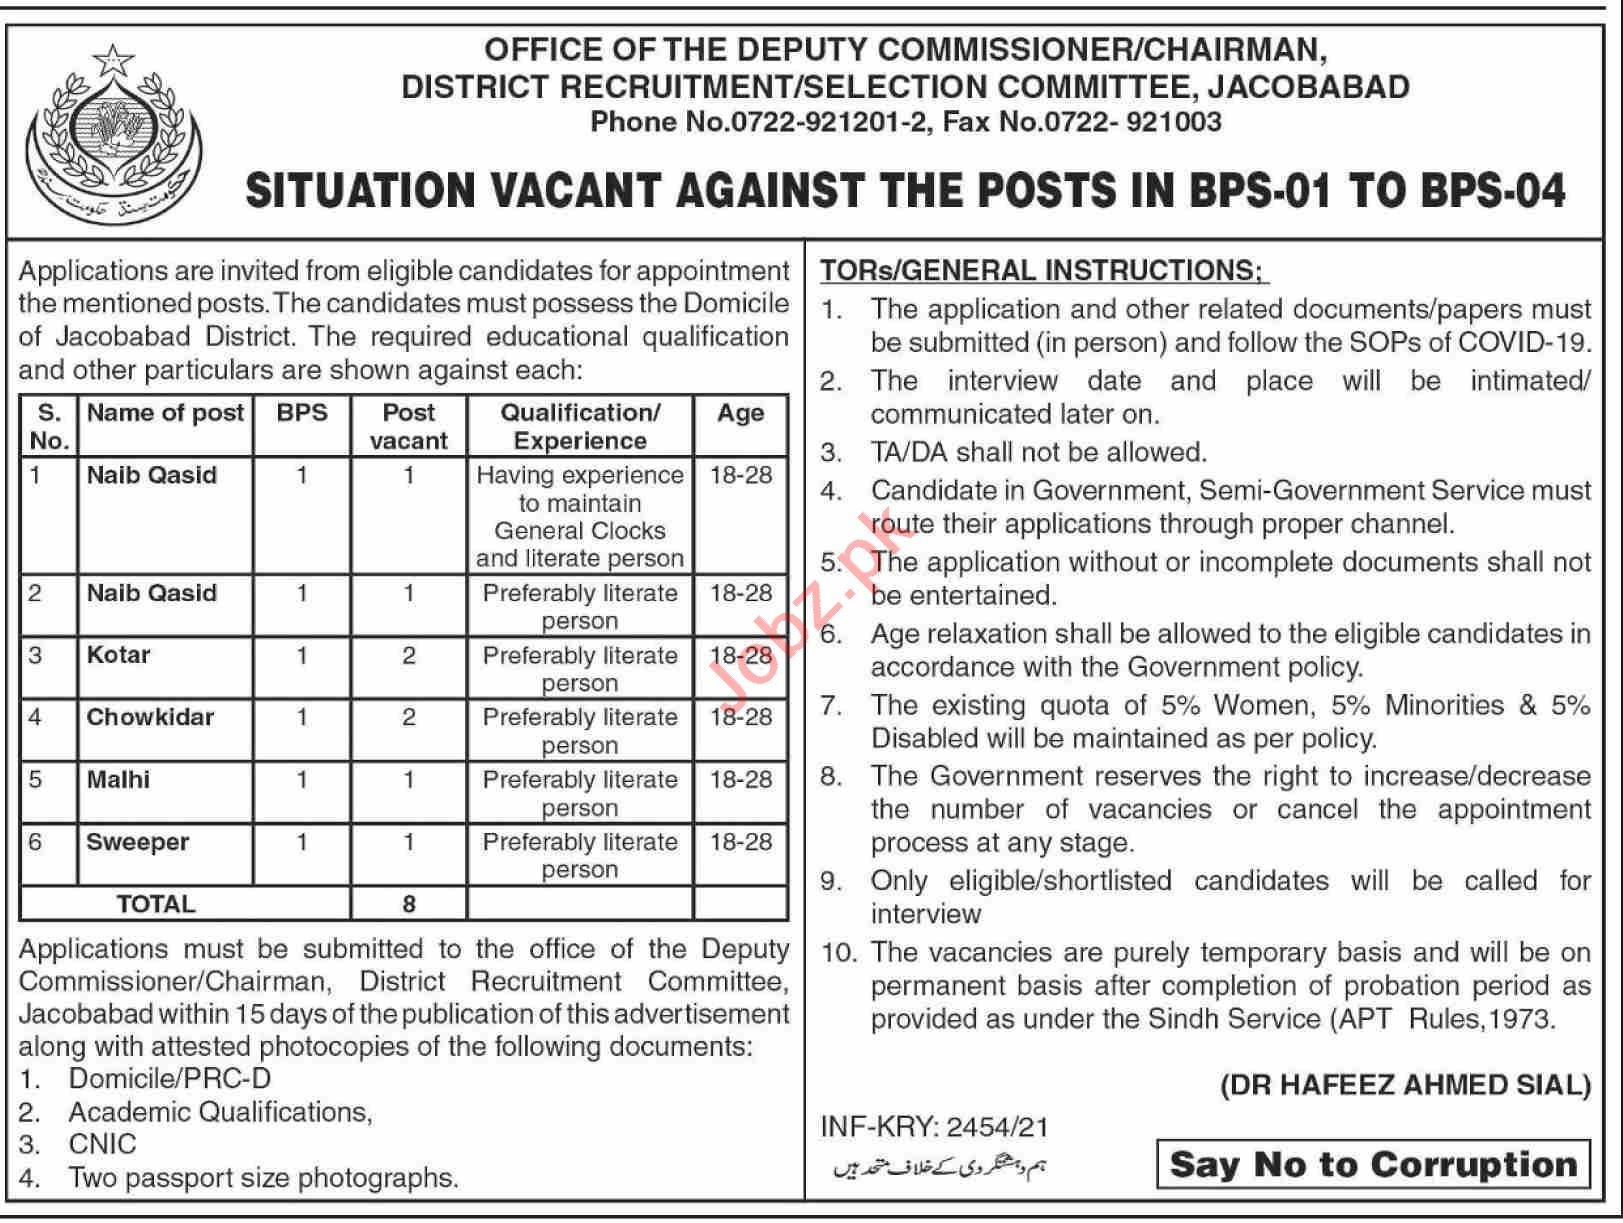 Recruitment & Selection Committee Jacobabad Jobs 2021